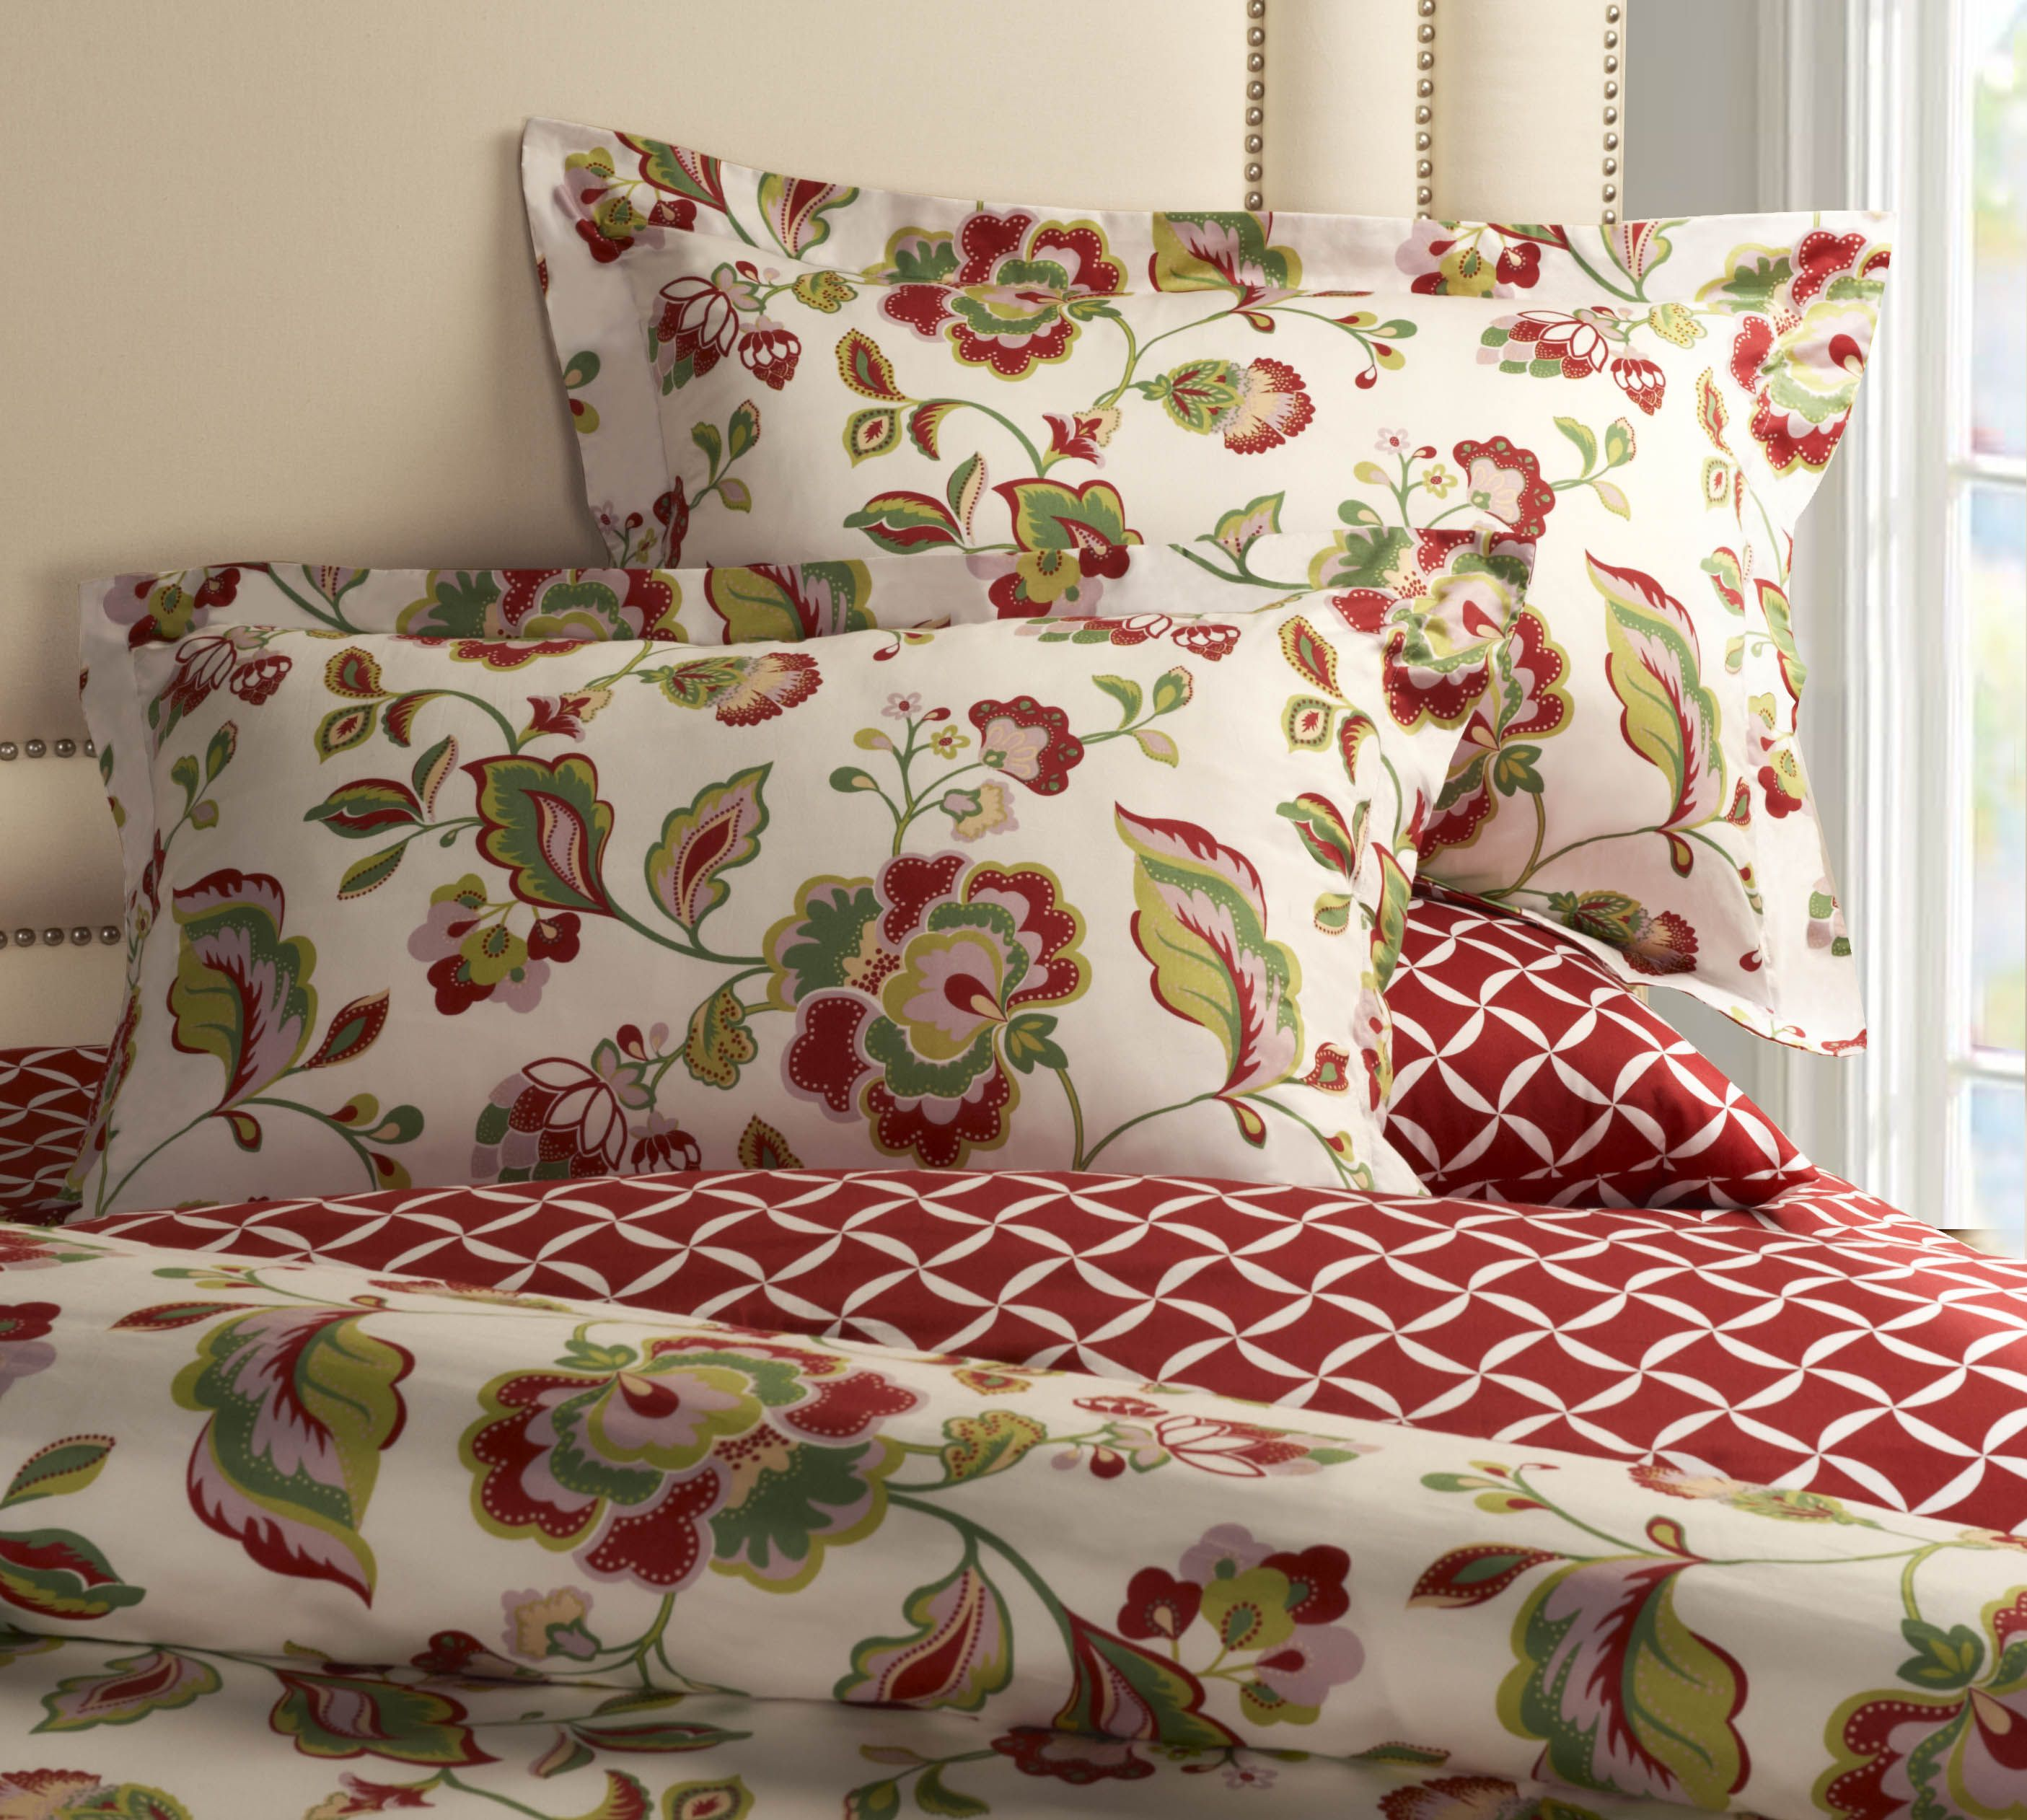 This 3 Pc Bedding Set With A Floral Vibrant Jacobean